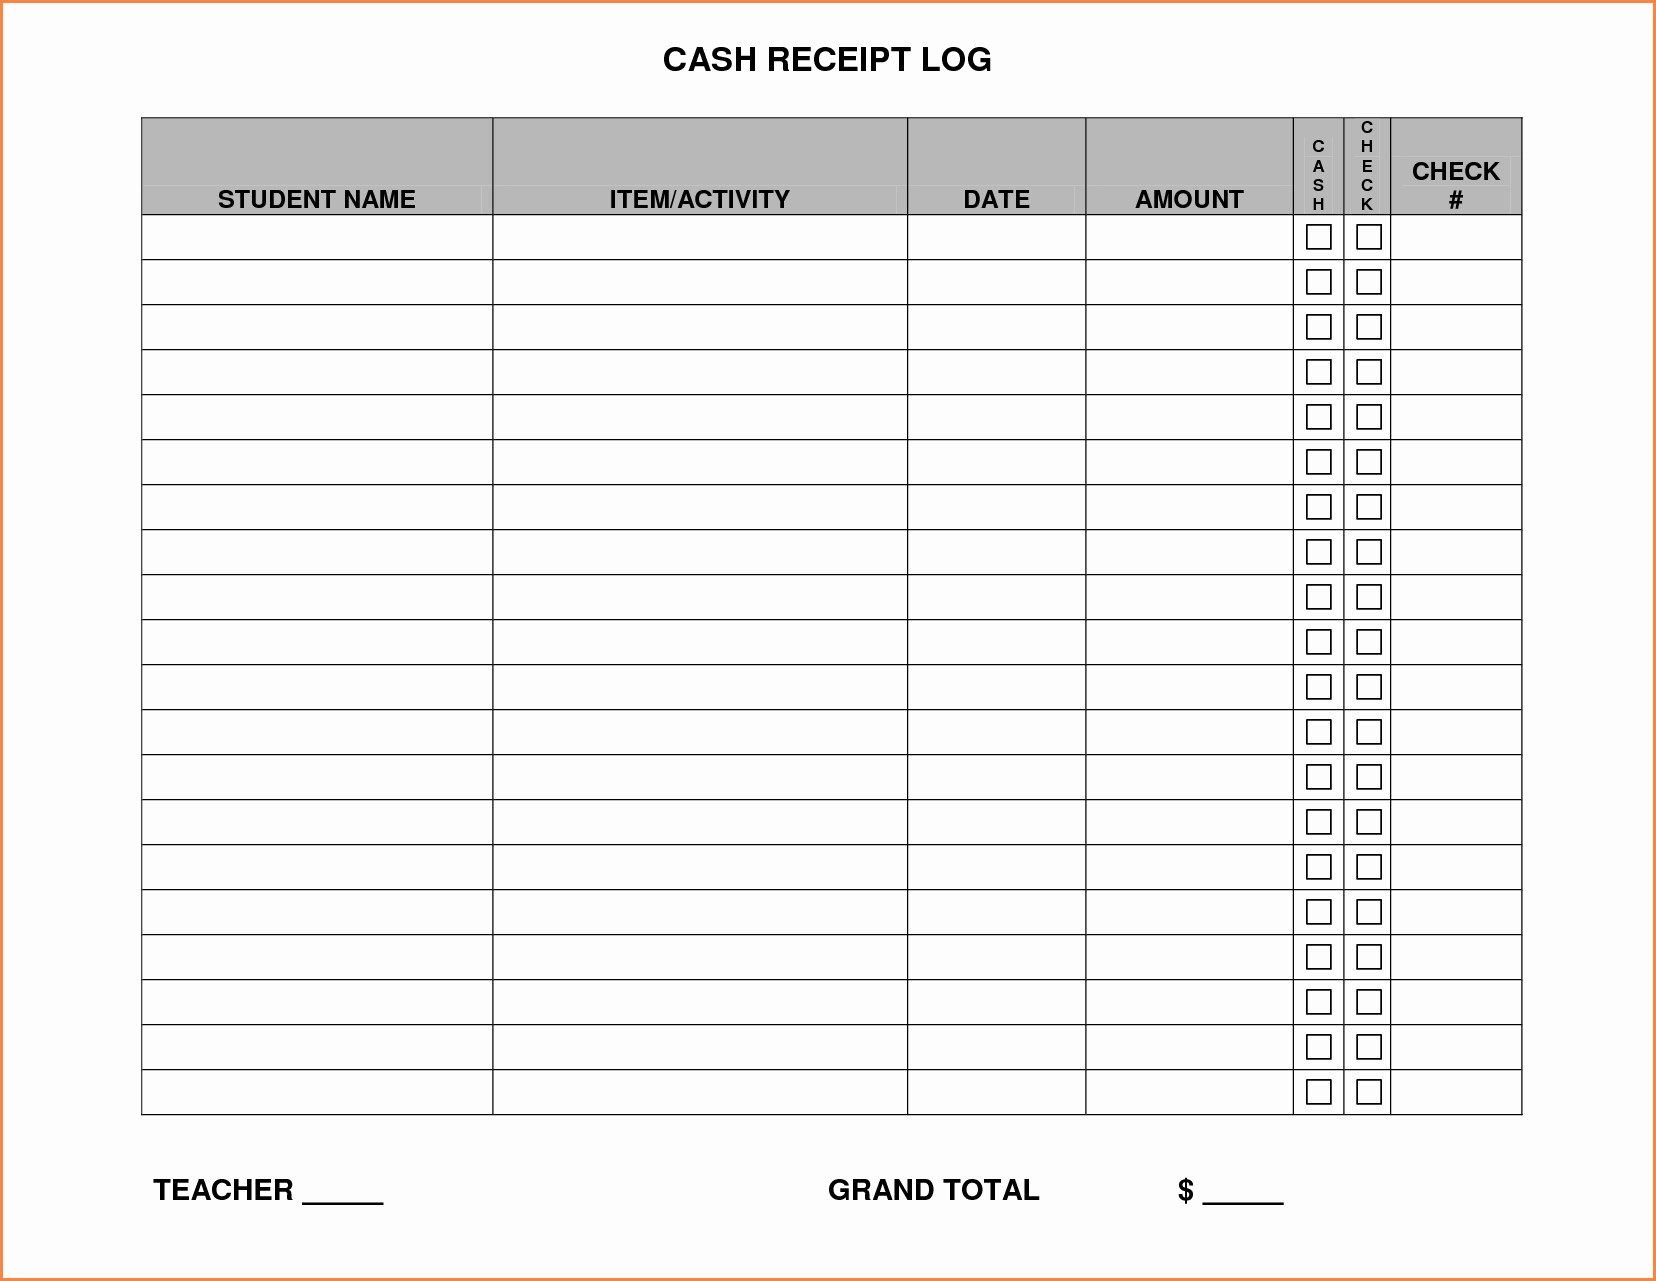 Free Printable Cash Receipt Template Elegant Free Printable Receipt Templates Inspirational Printable